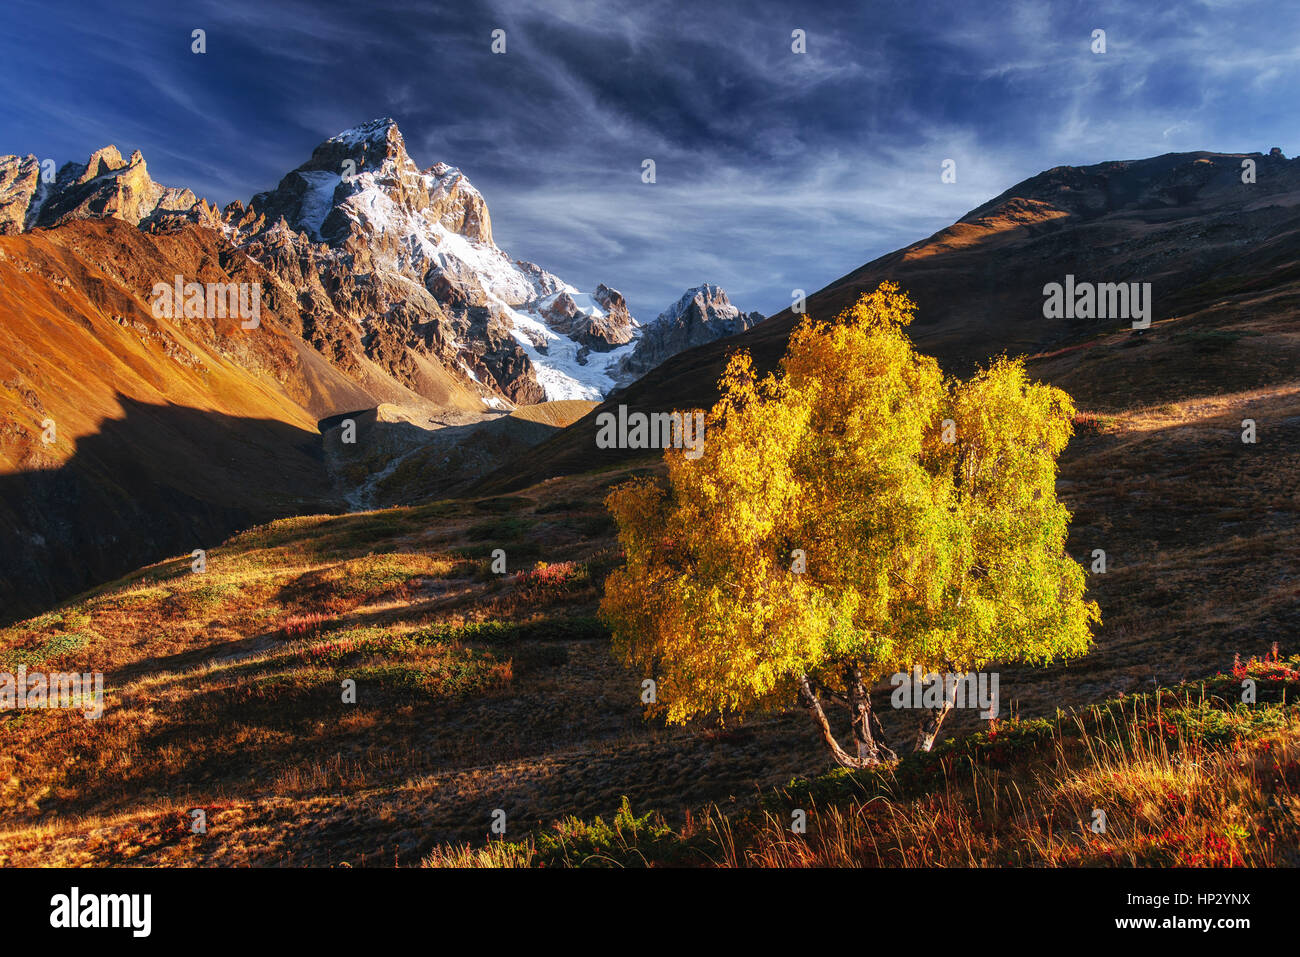 Autumn landscape and snowy peaks in the sun. - Stock Image